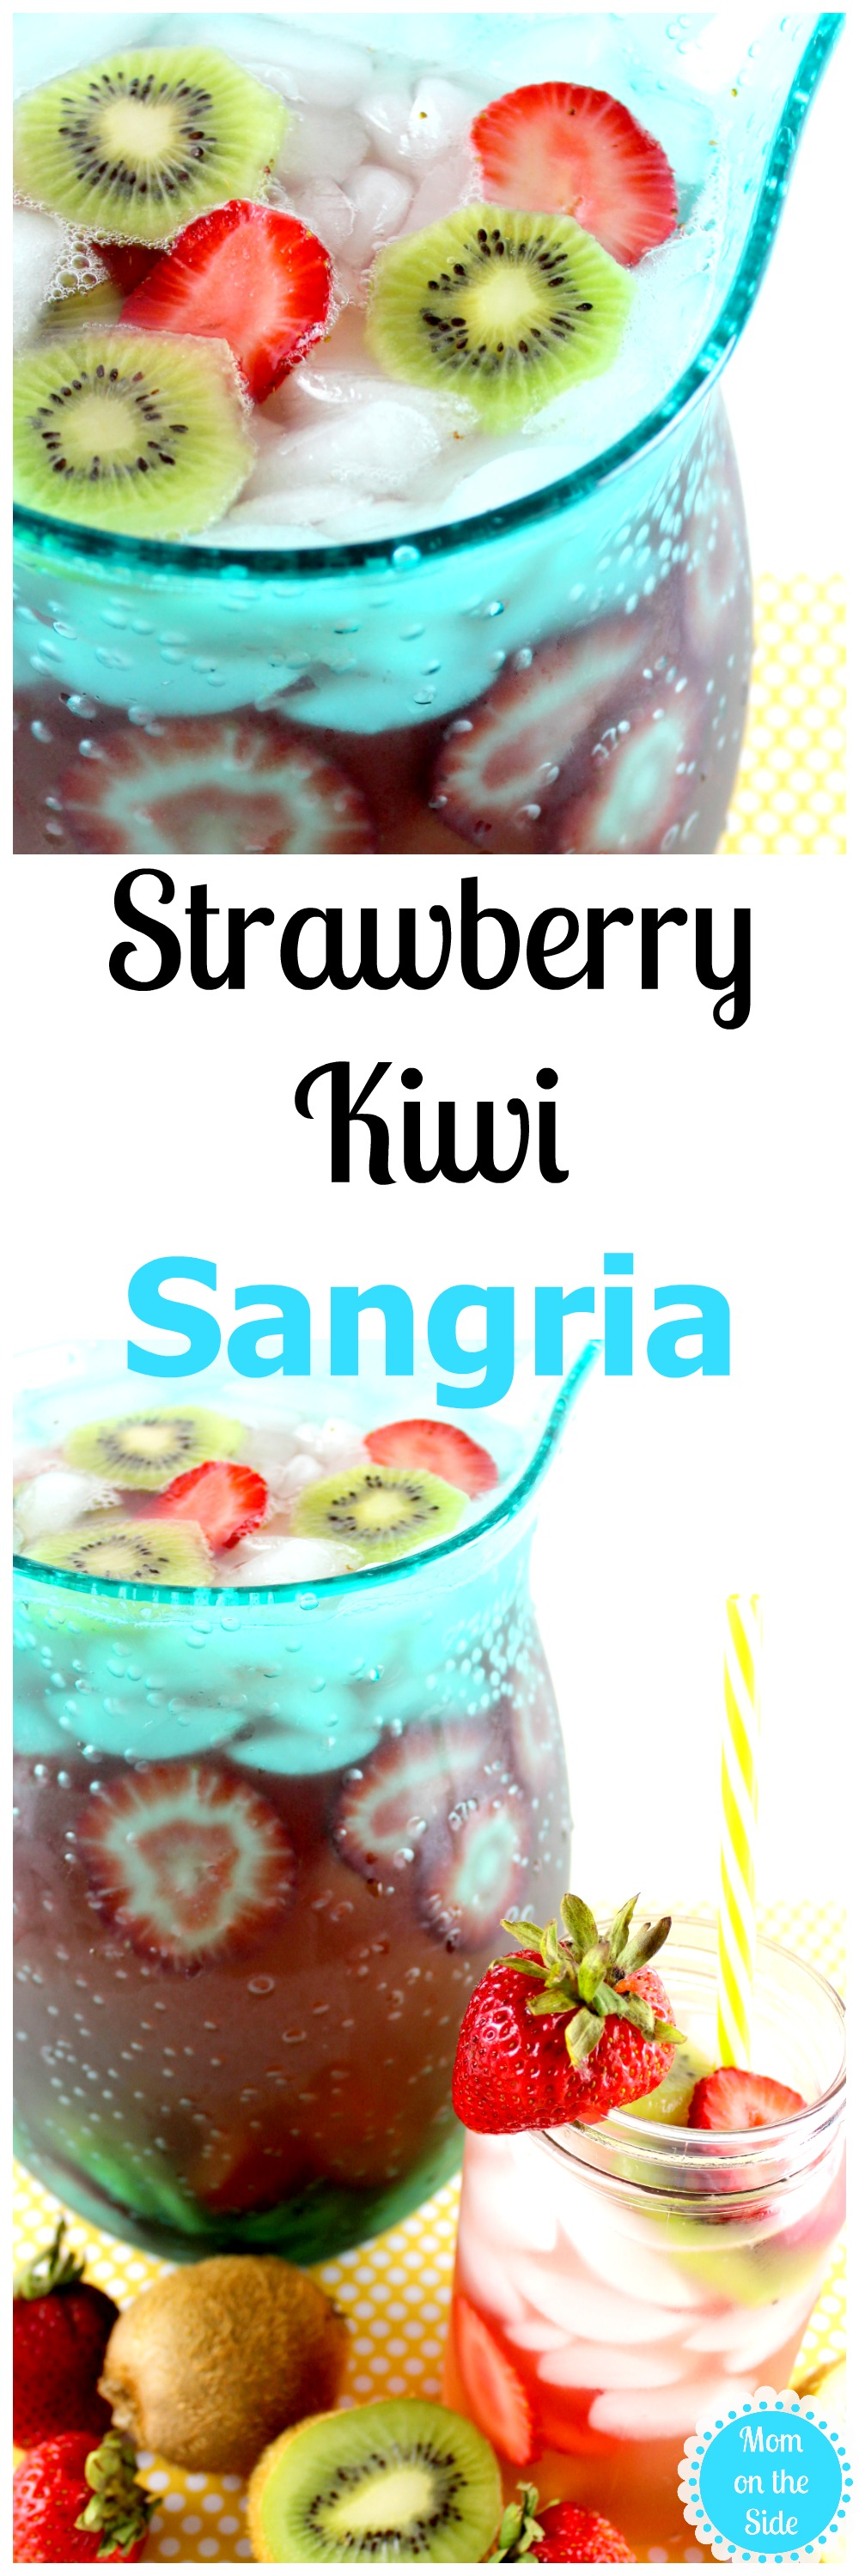 Strawberry Kiwi Sangria is an easy White Wine Sangria Recipe!